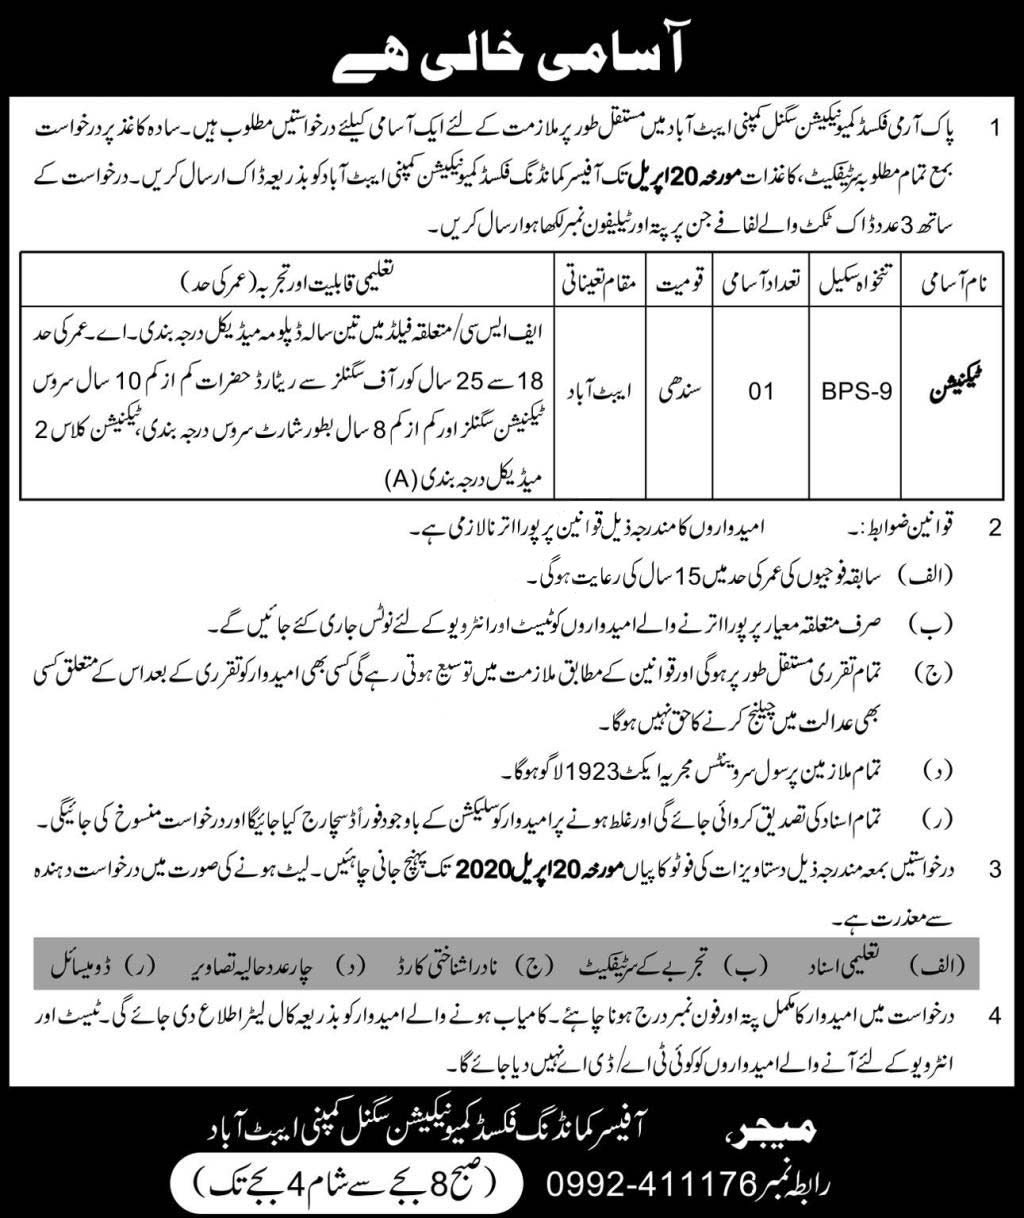 Pakistan Army Fixed Communication Signal Company Abbottabad Jobs 2020